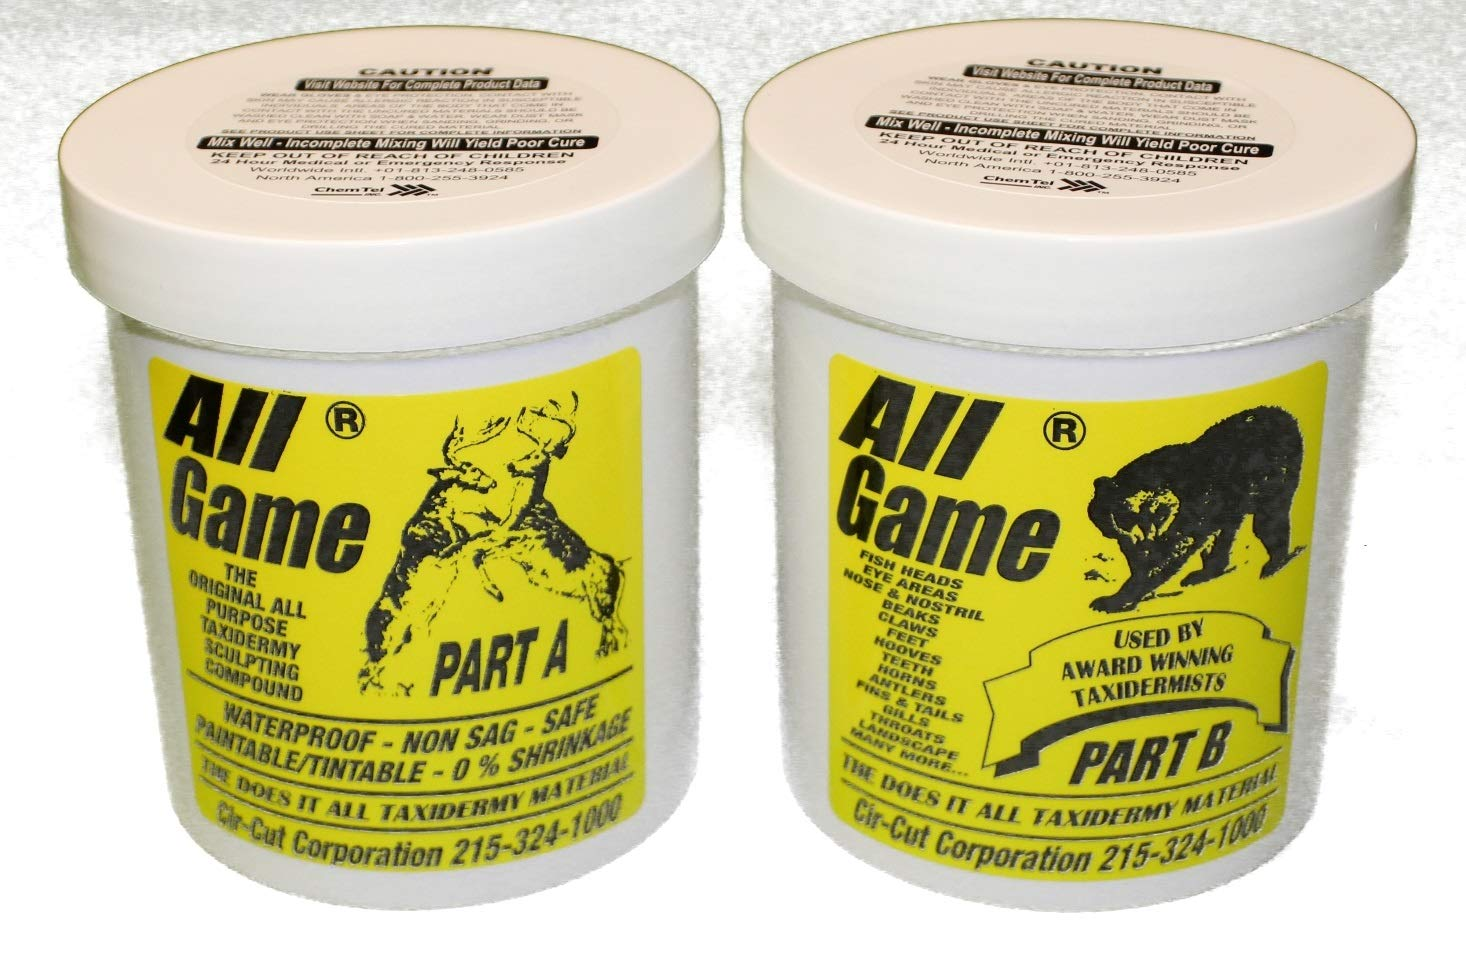 ALL GAME EPOXY PUTTY 3 POUND KIT - 2 PINTS - TAXIDERMY ARTS AND CRAFTS BY CIR-CUT CORPORATION The Original All Purpose Epoxy Putty MOLD SHAPE FILL - 1001 Uses!